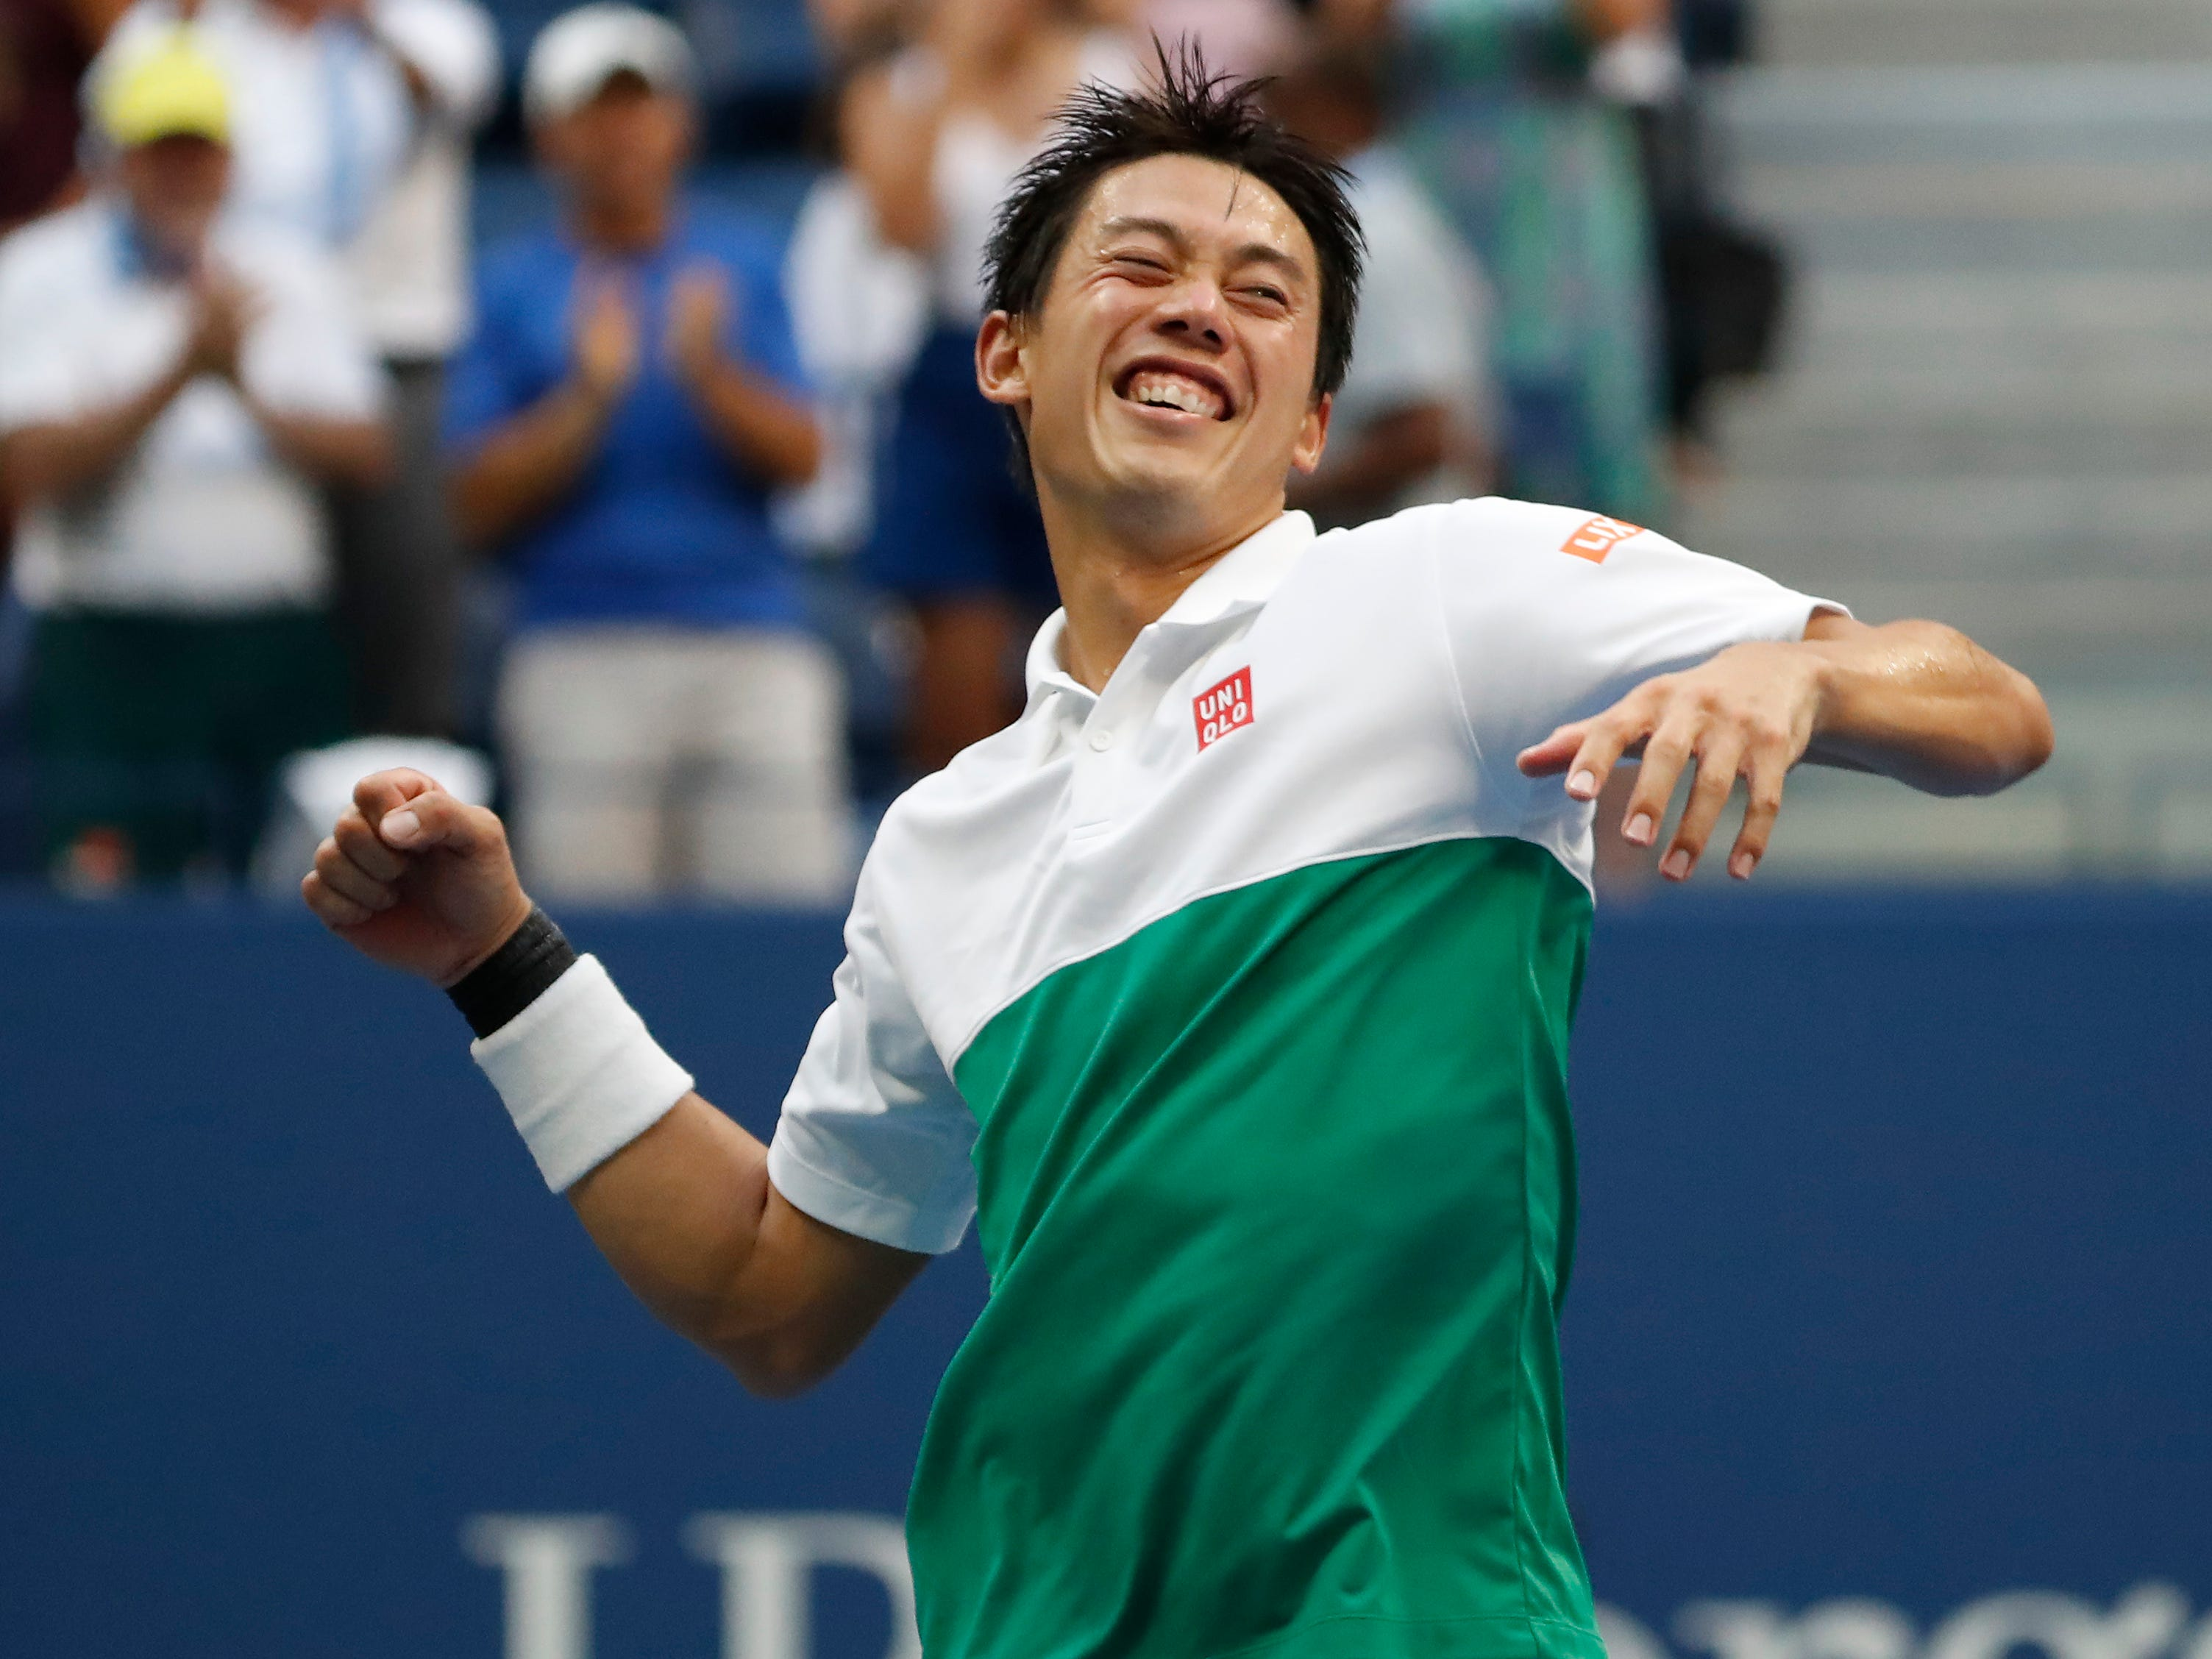 Kei Nishikori, the 21st seed, celebrates after outlasting No. 7 seed Marin Cilic 2-6, 6-4, 7-6 (7-5), 4-6, 6-4 in the quarterfinals.